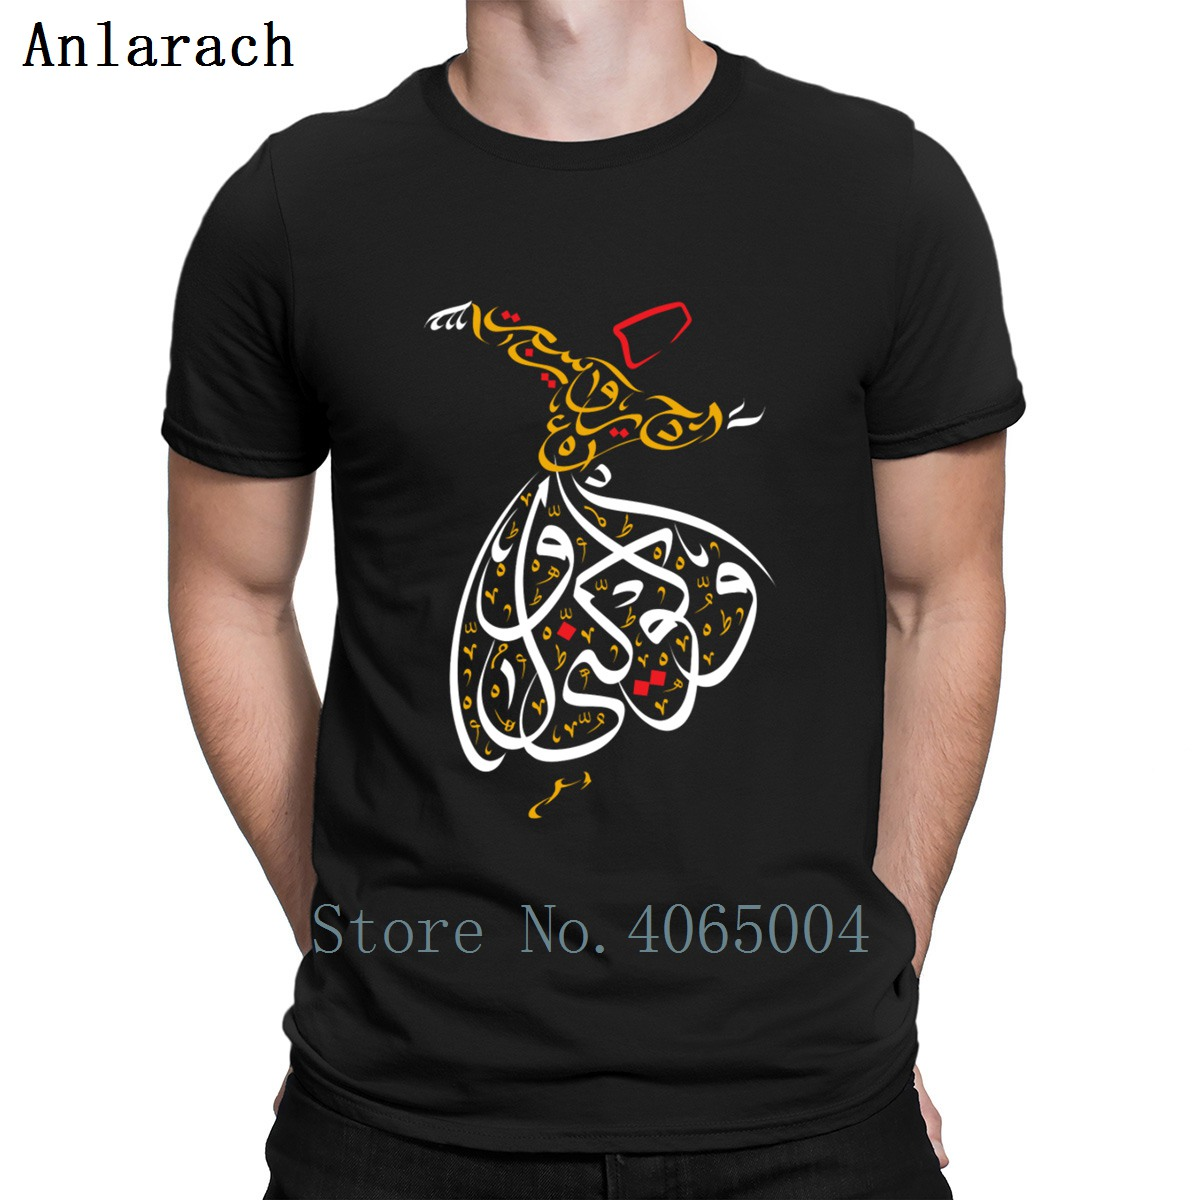 Sufism Islamic Arabic Calligraphy Sufi Whirling Retro T Shirt Fashion Outfit Plus Size 3xl Short Sleeve Shirt